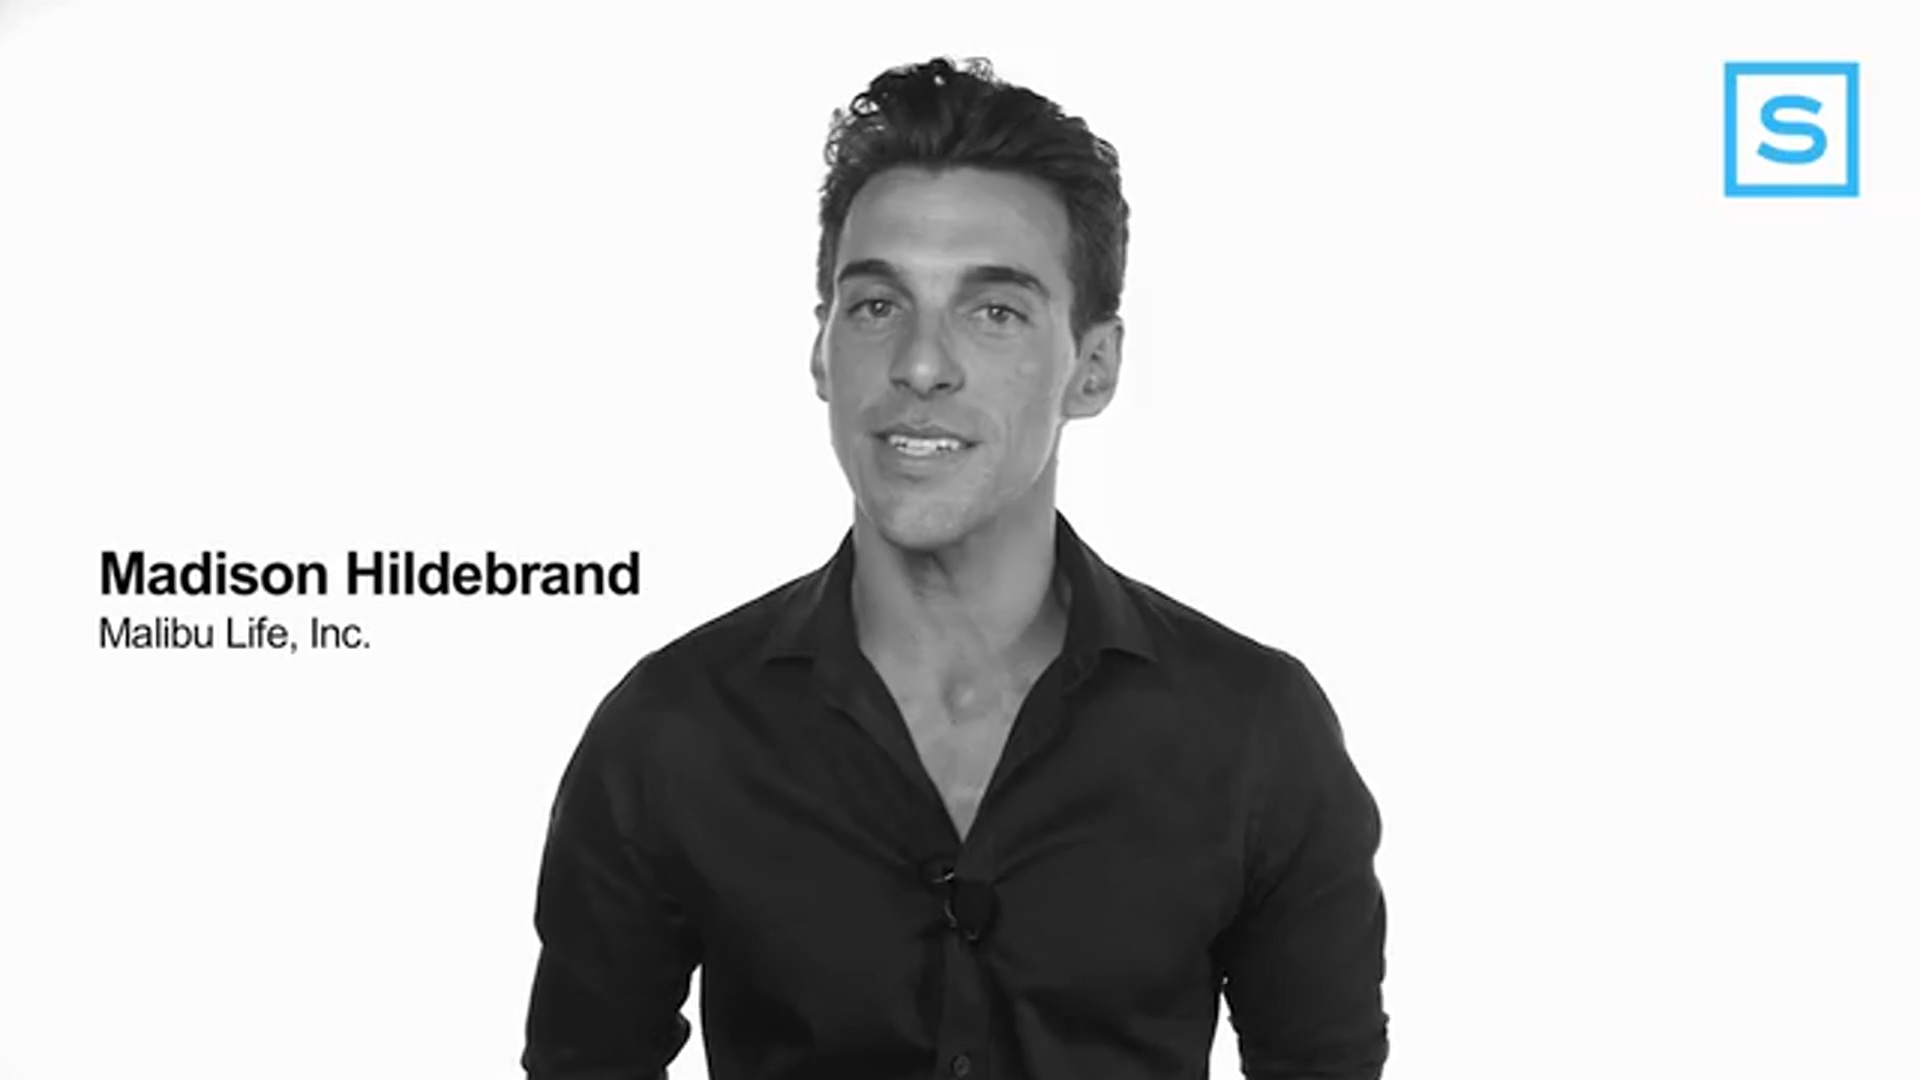 Do you dial, swipe or text? Madison Hildebrand